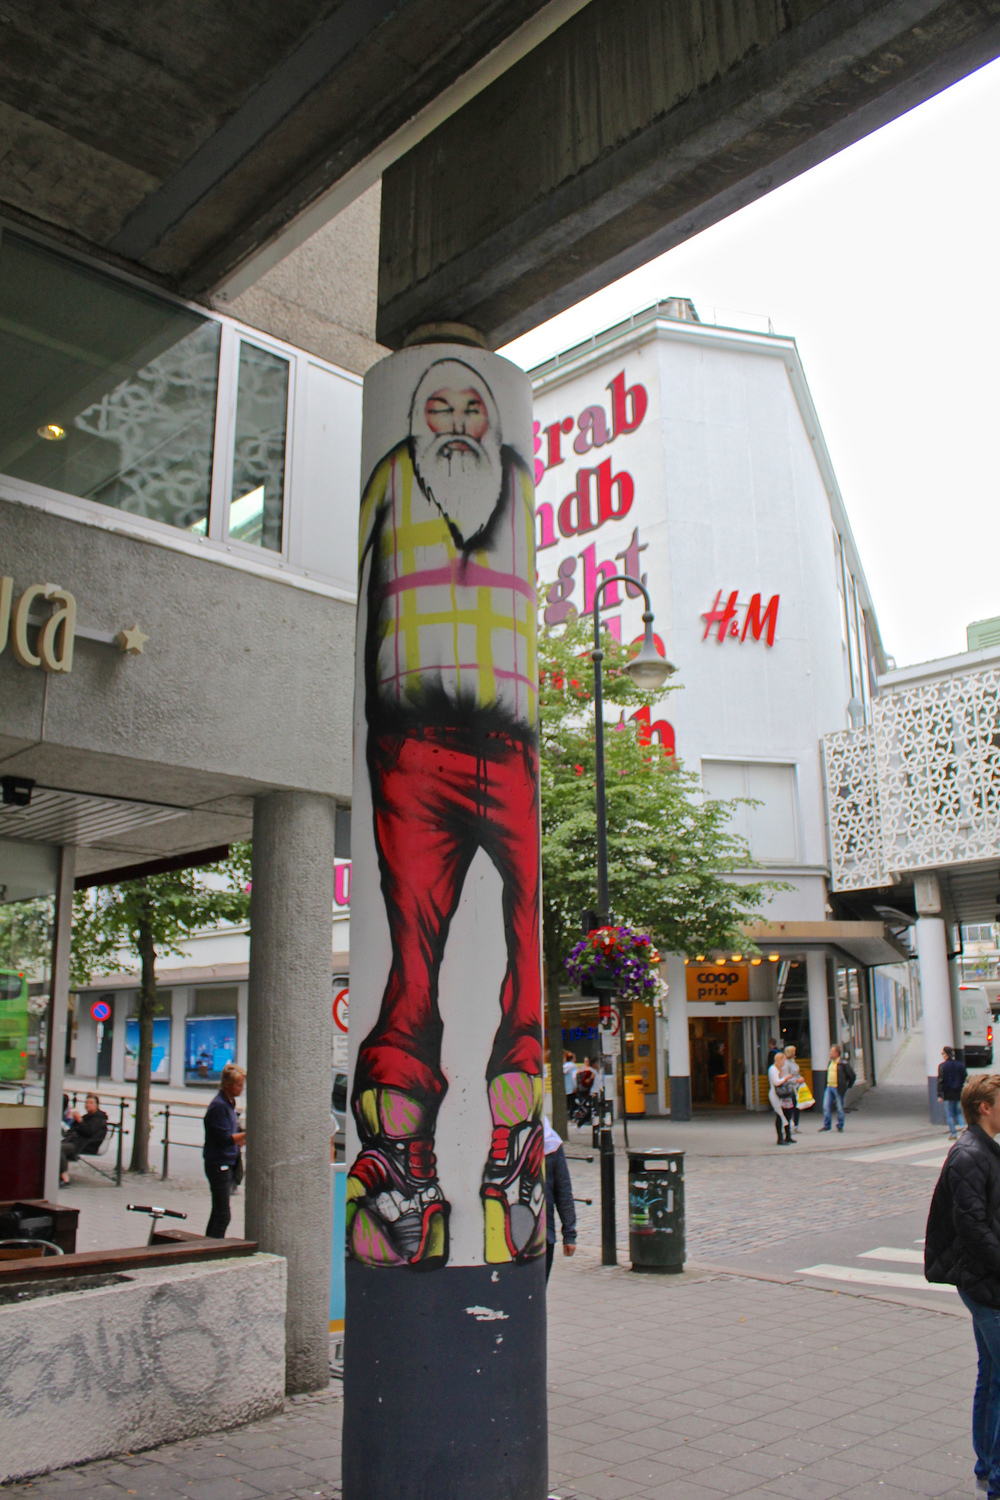 David-Choe-Urban-Art-Nuart-07